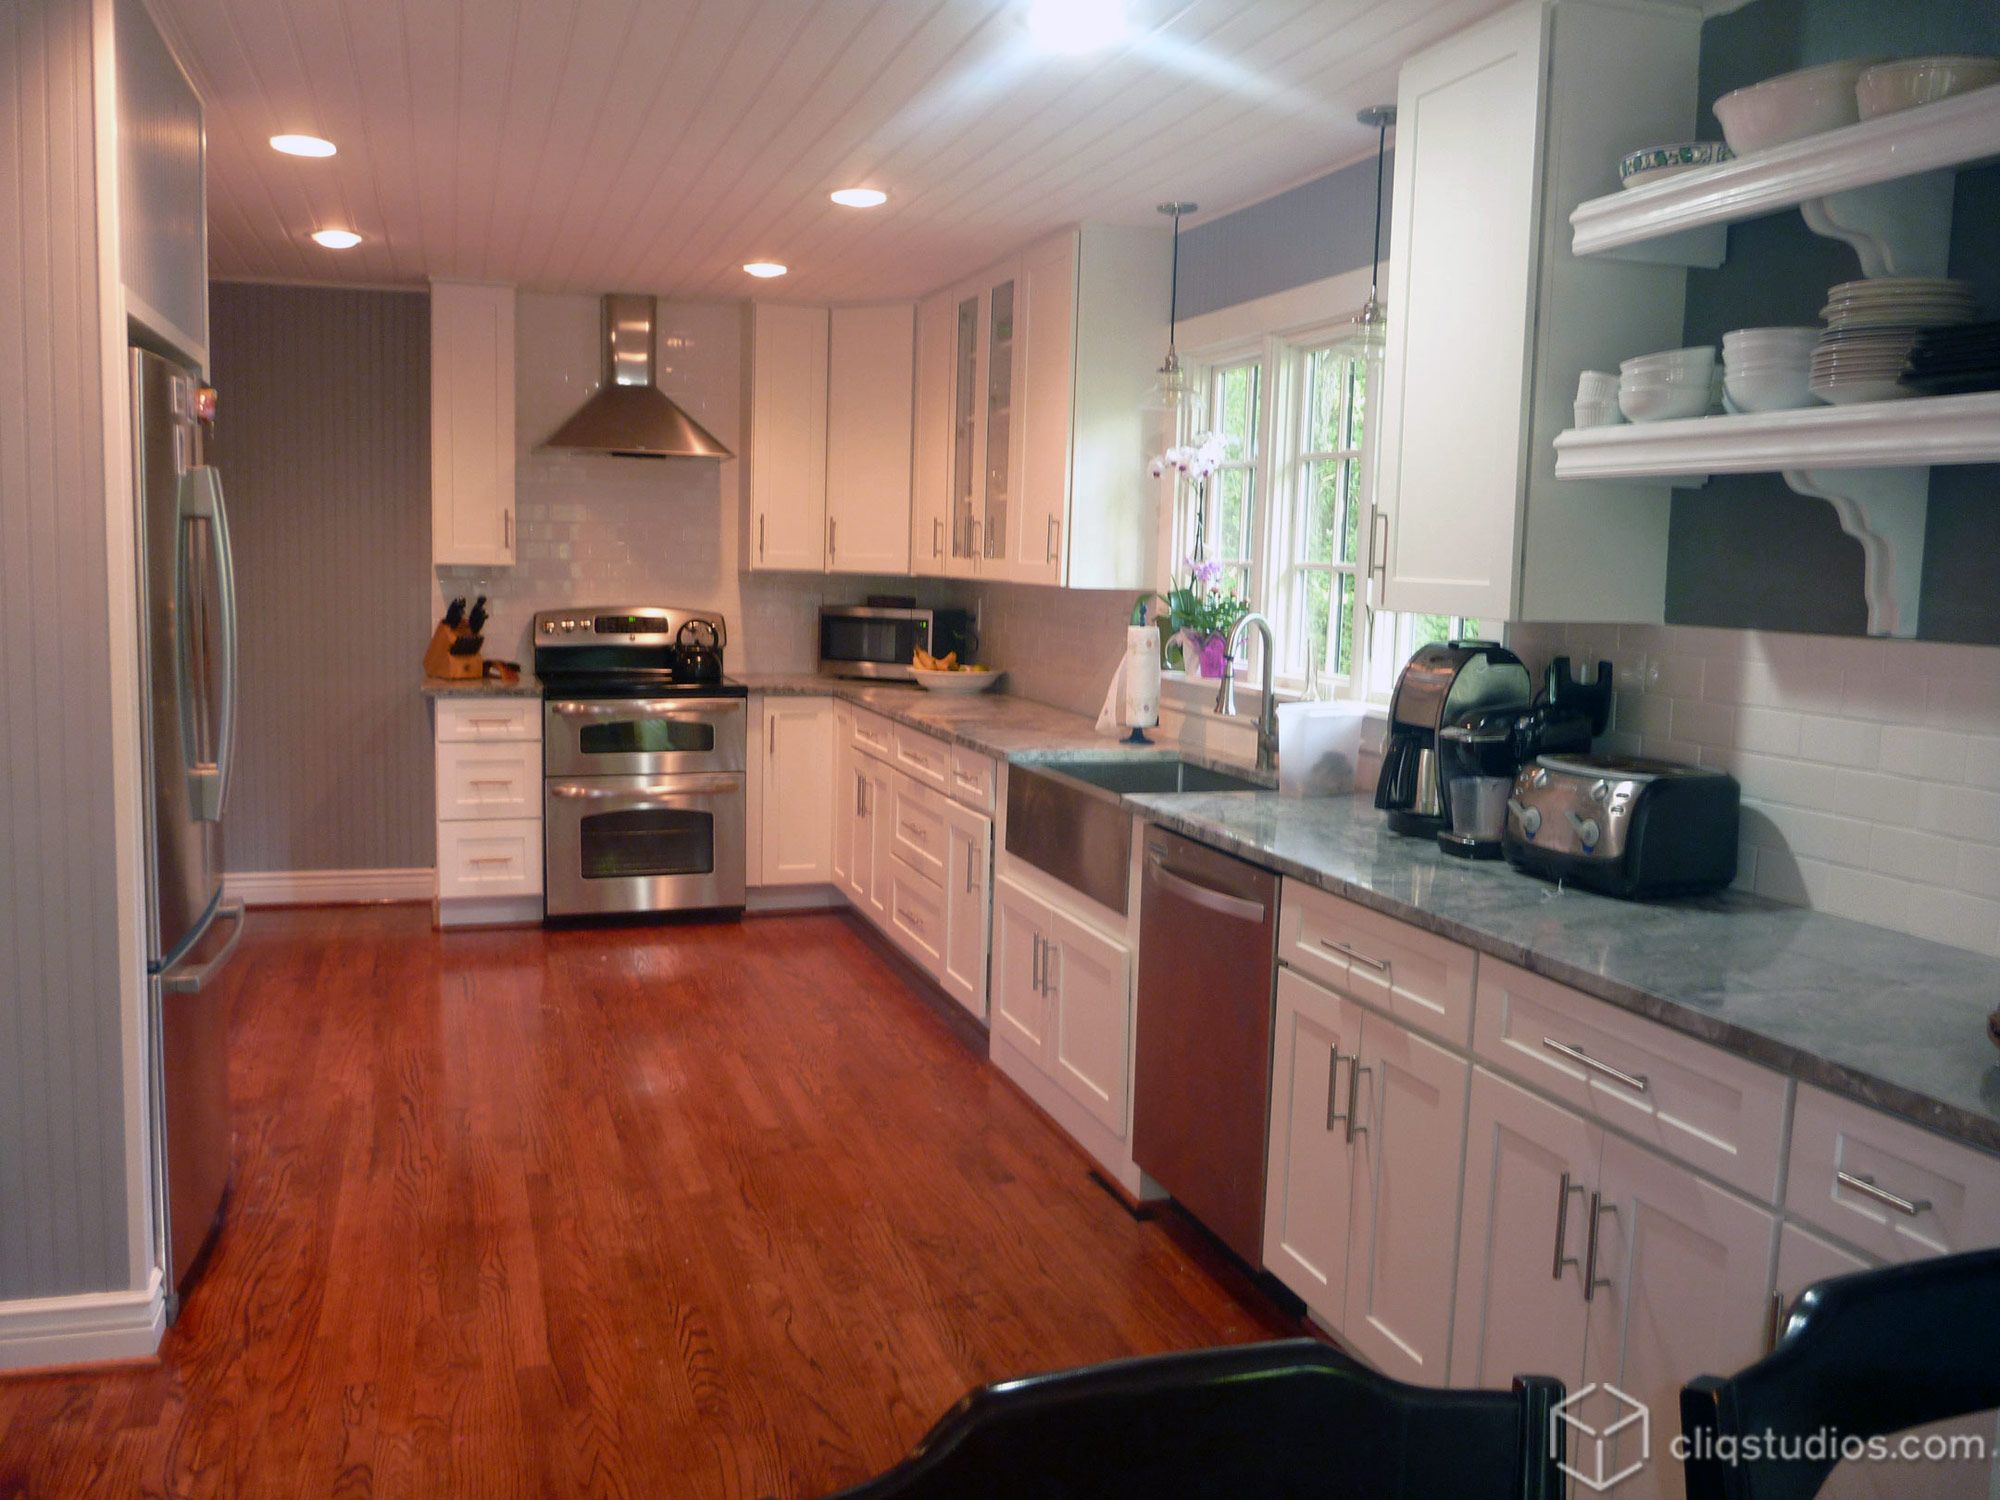 New white missionstyle Dayton kitchen cabinets from CliqStudios